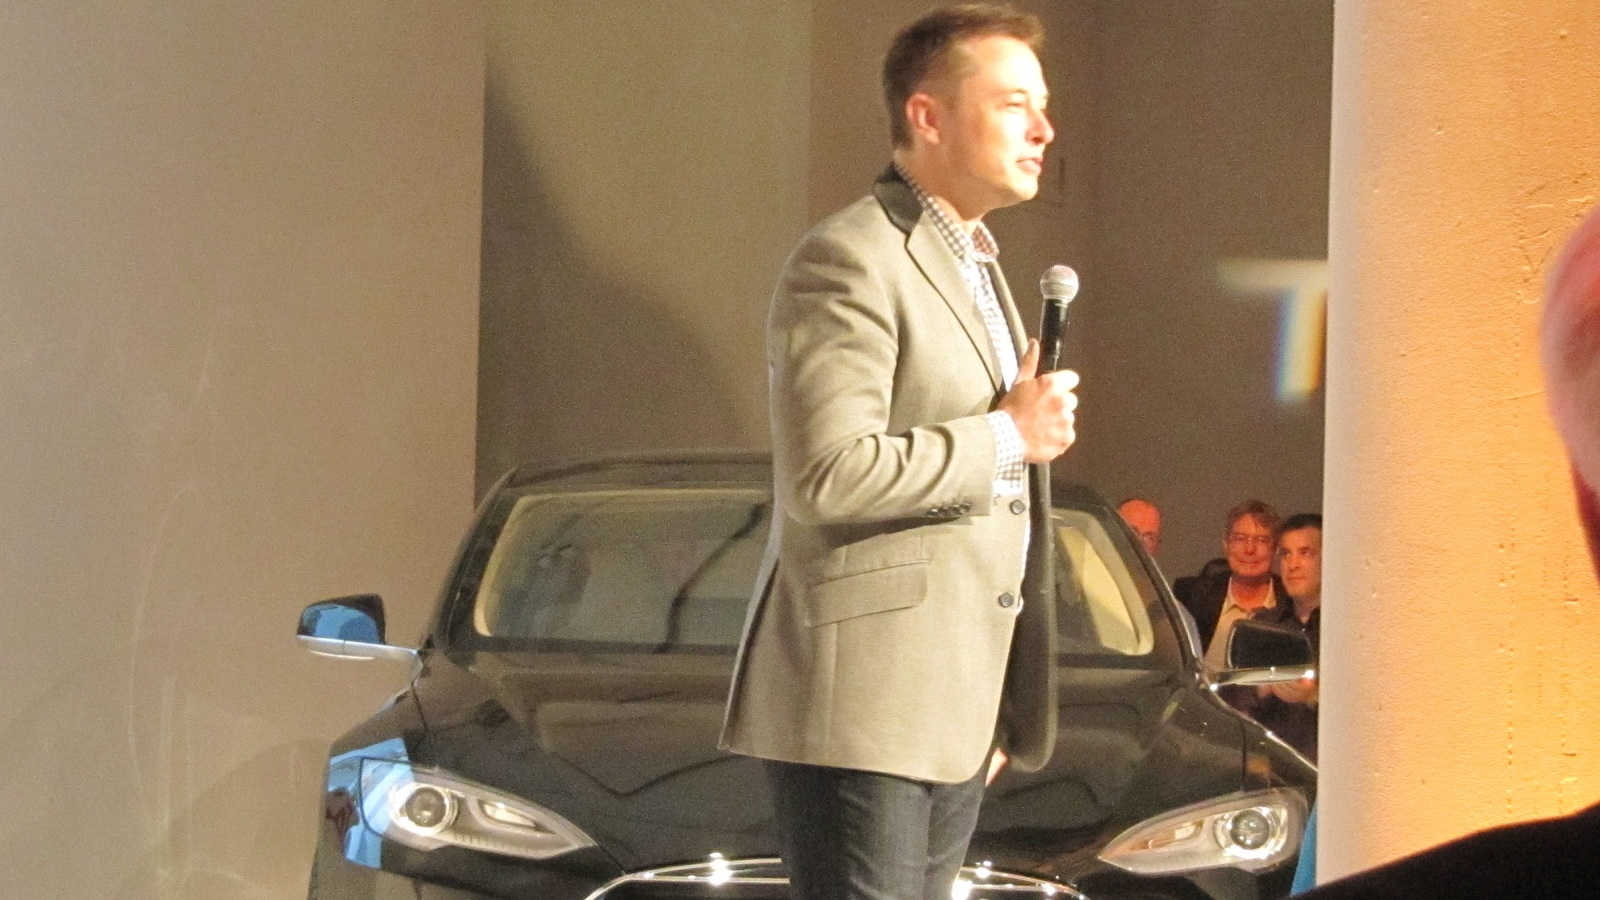 Tesla Motors CEO Elon Musk at Motor Trend 'Car of the Year' ceremony in New York City, Nov 2012